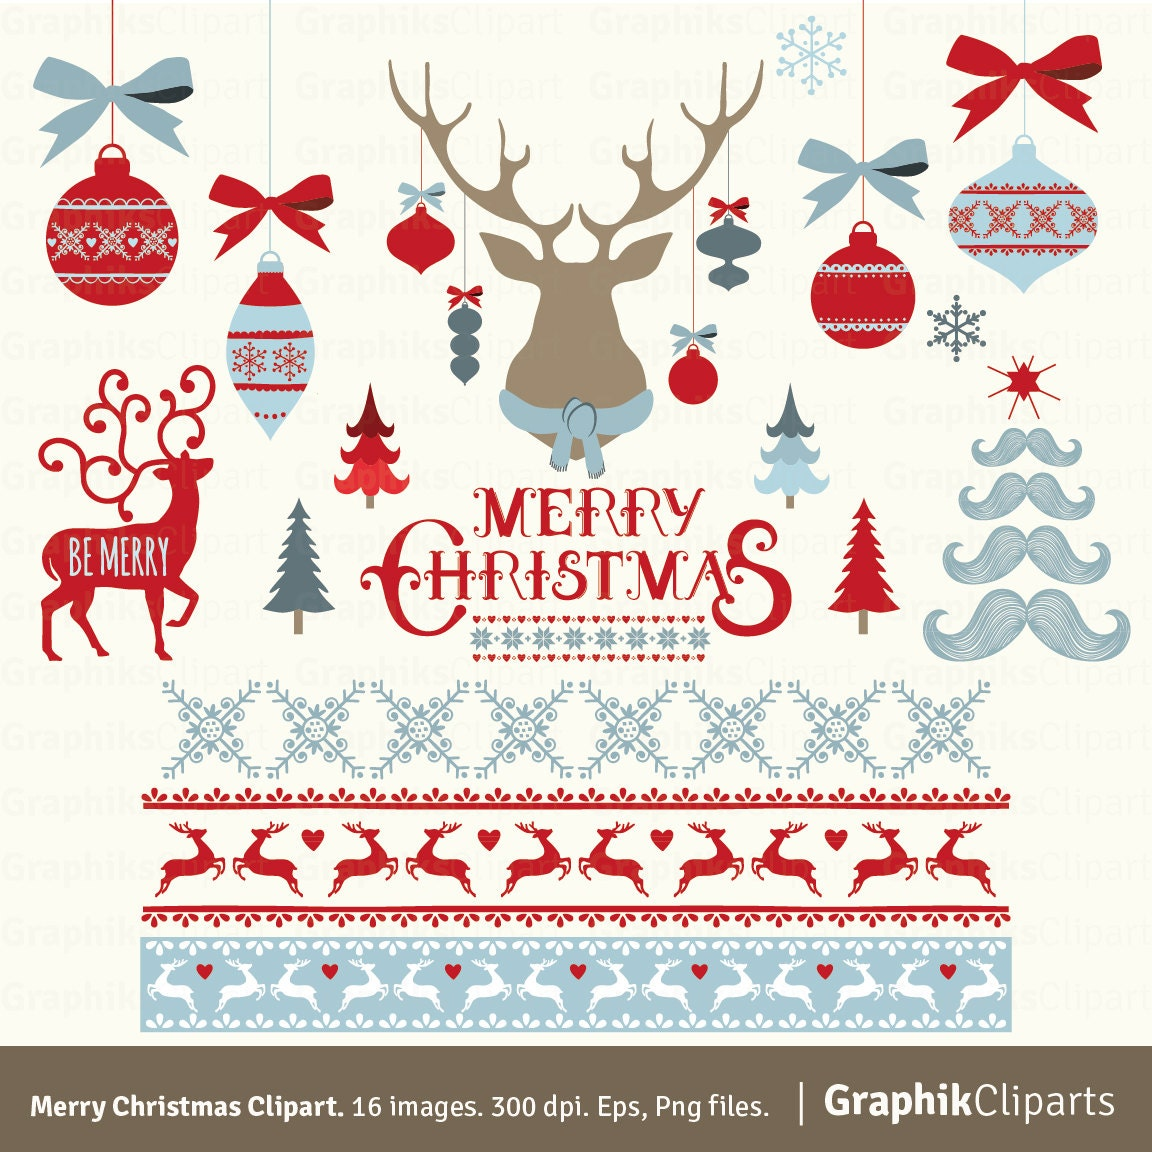 Merry Christmas Clipart. \